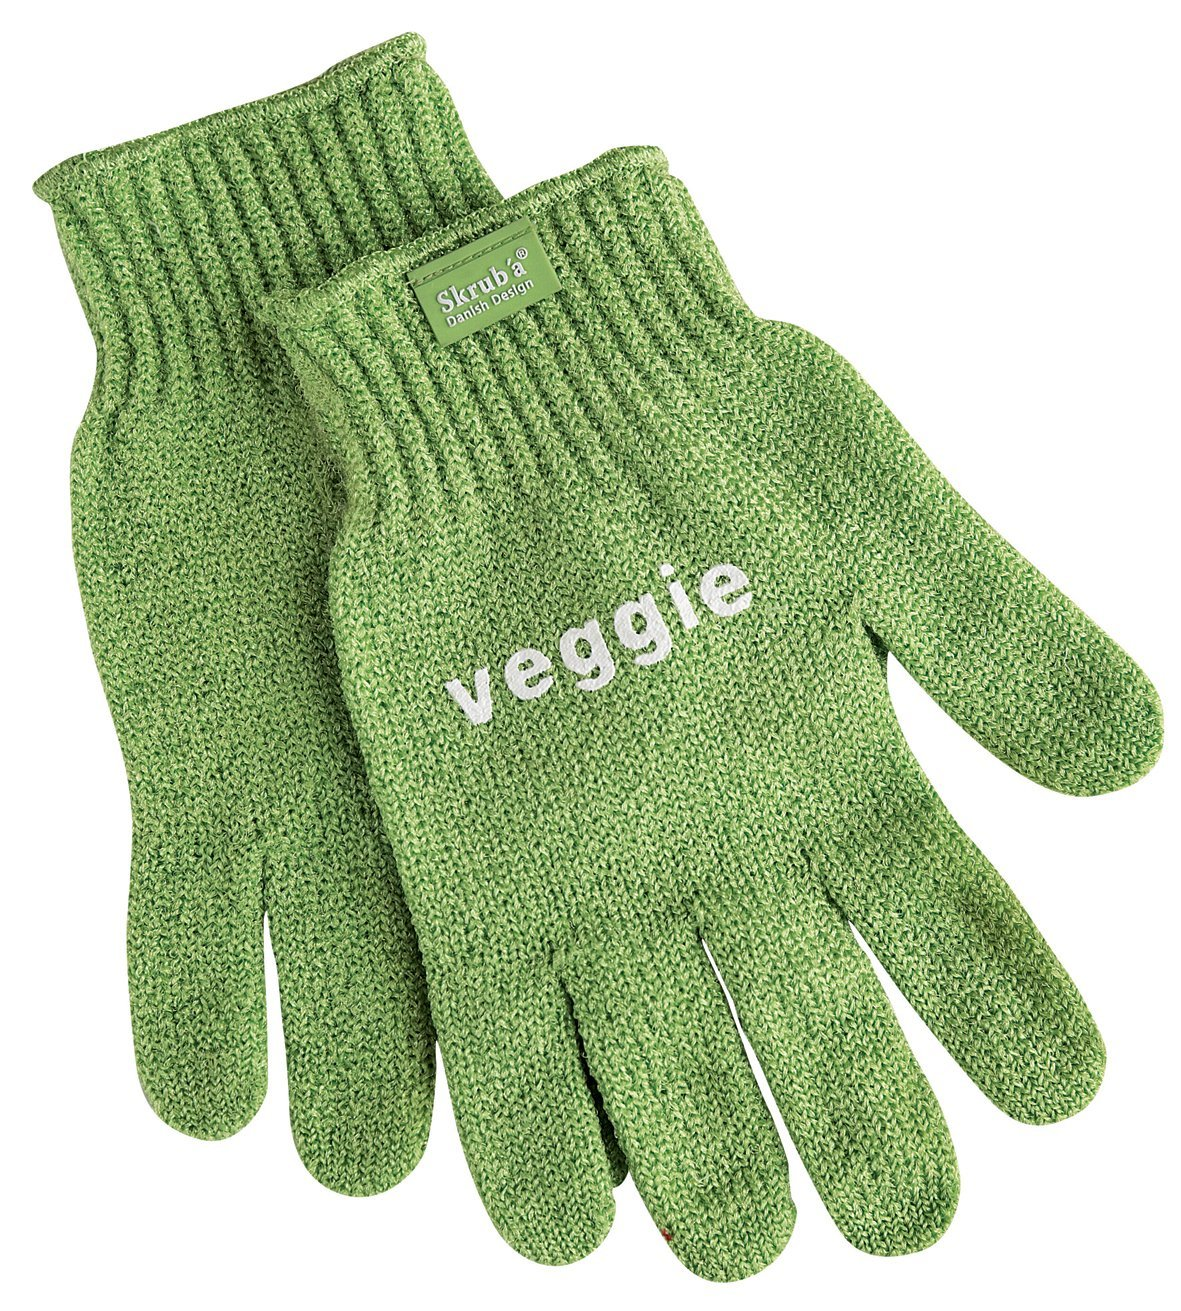 Skruba Glove for Veggies